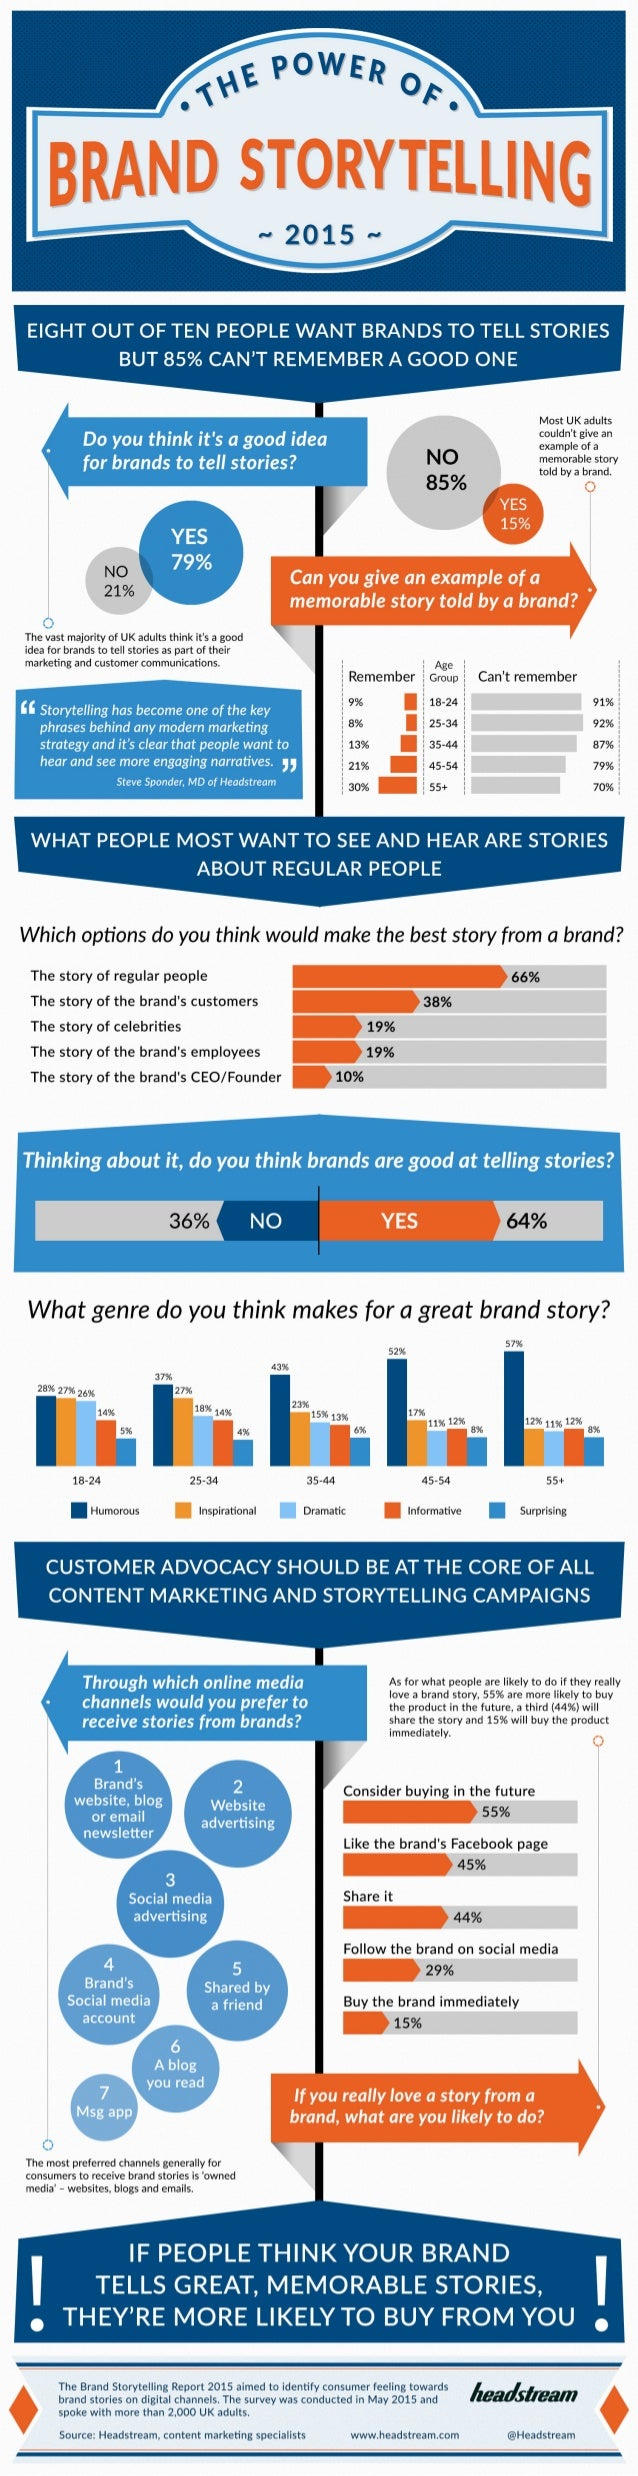 "0"" POWER °. ¢  BRAND STORYTELLING  -- 2015 -  EIGHT OUT OF TEN PEOPLE WANT BRANDS TO TELL STORIES BUT 85% CAN'T REMEMBER A..."